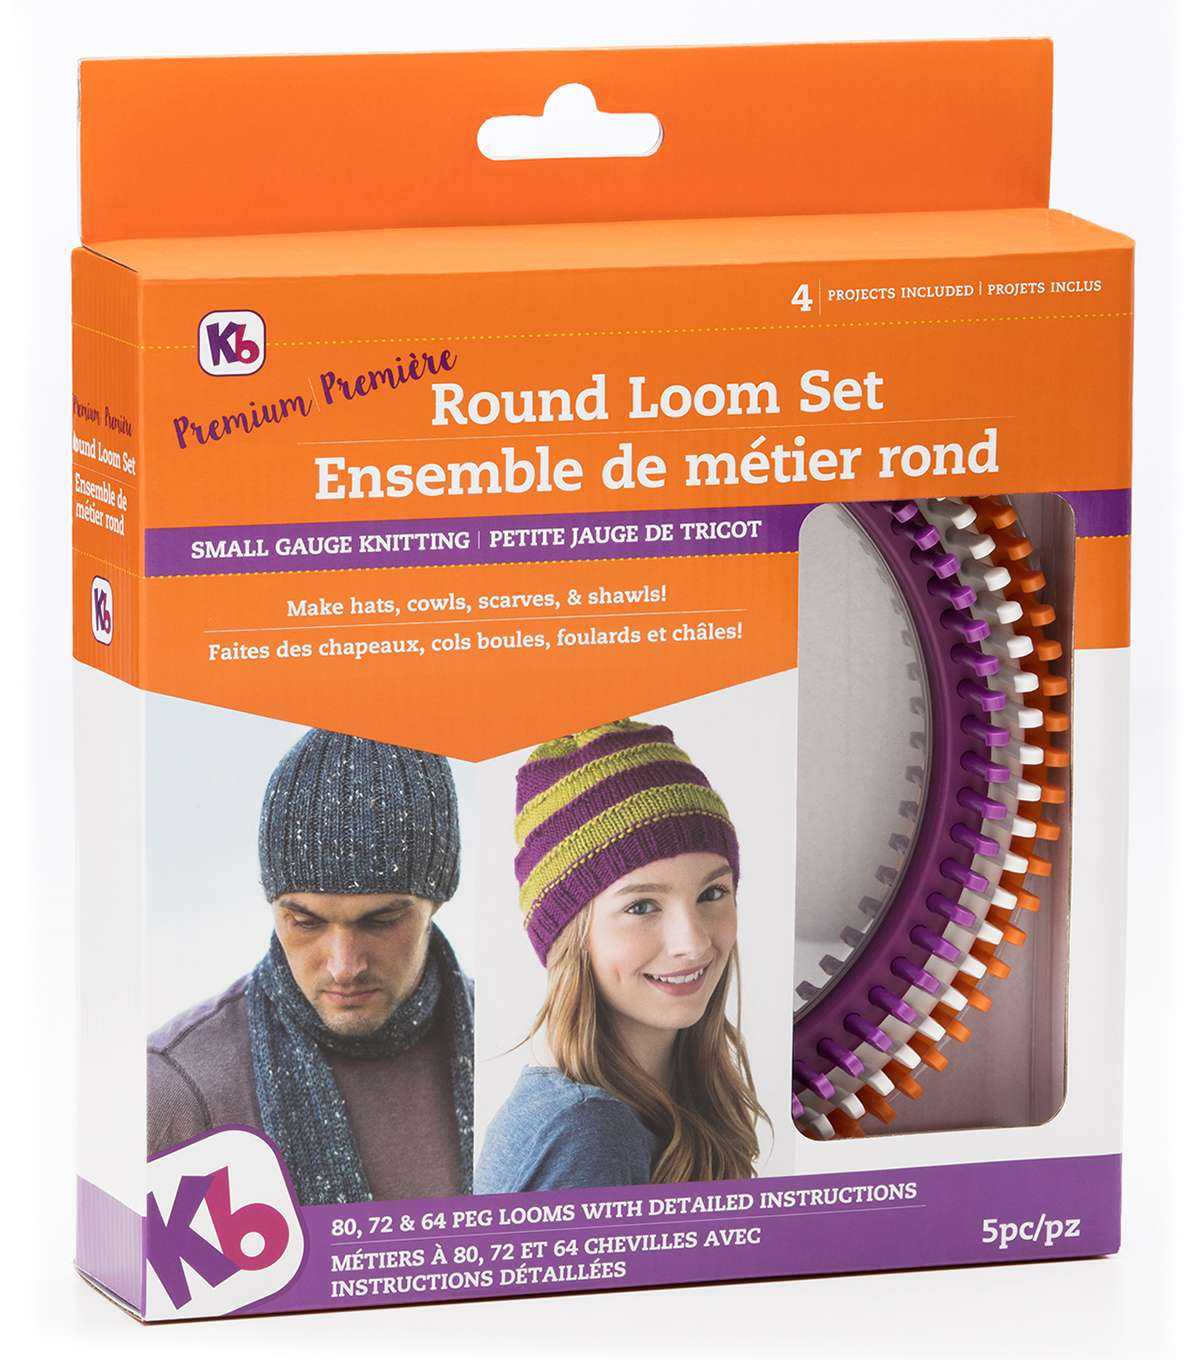 Introducing…'Premium' Round Loom Set